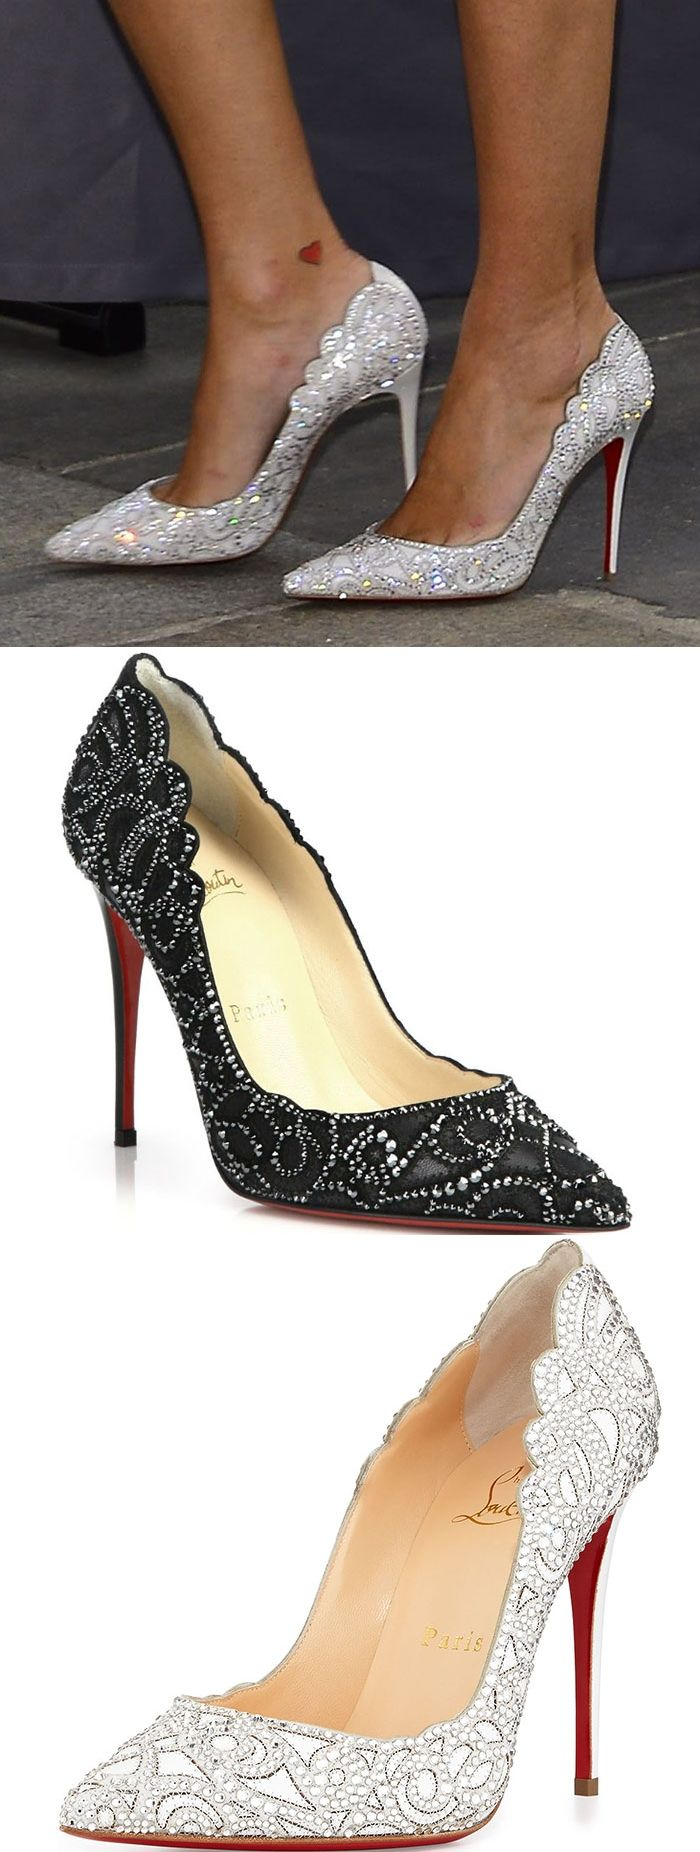 "Nicky Hilton wearing Christian Louboutin ""Top Vague"" pumps"